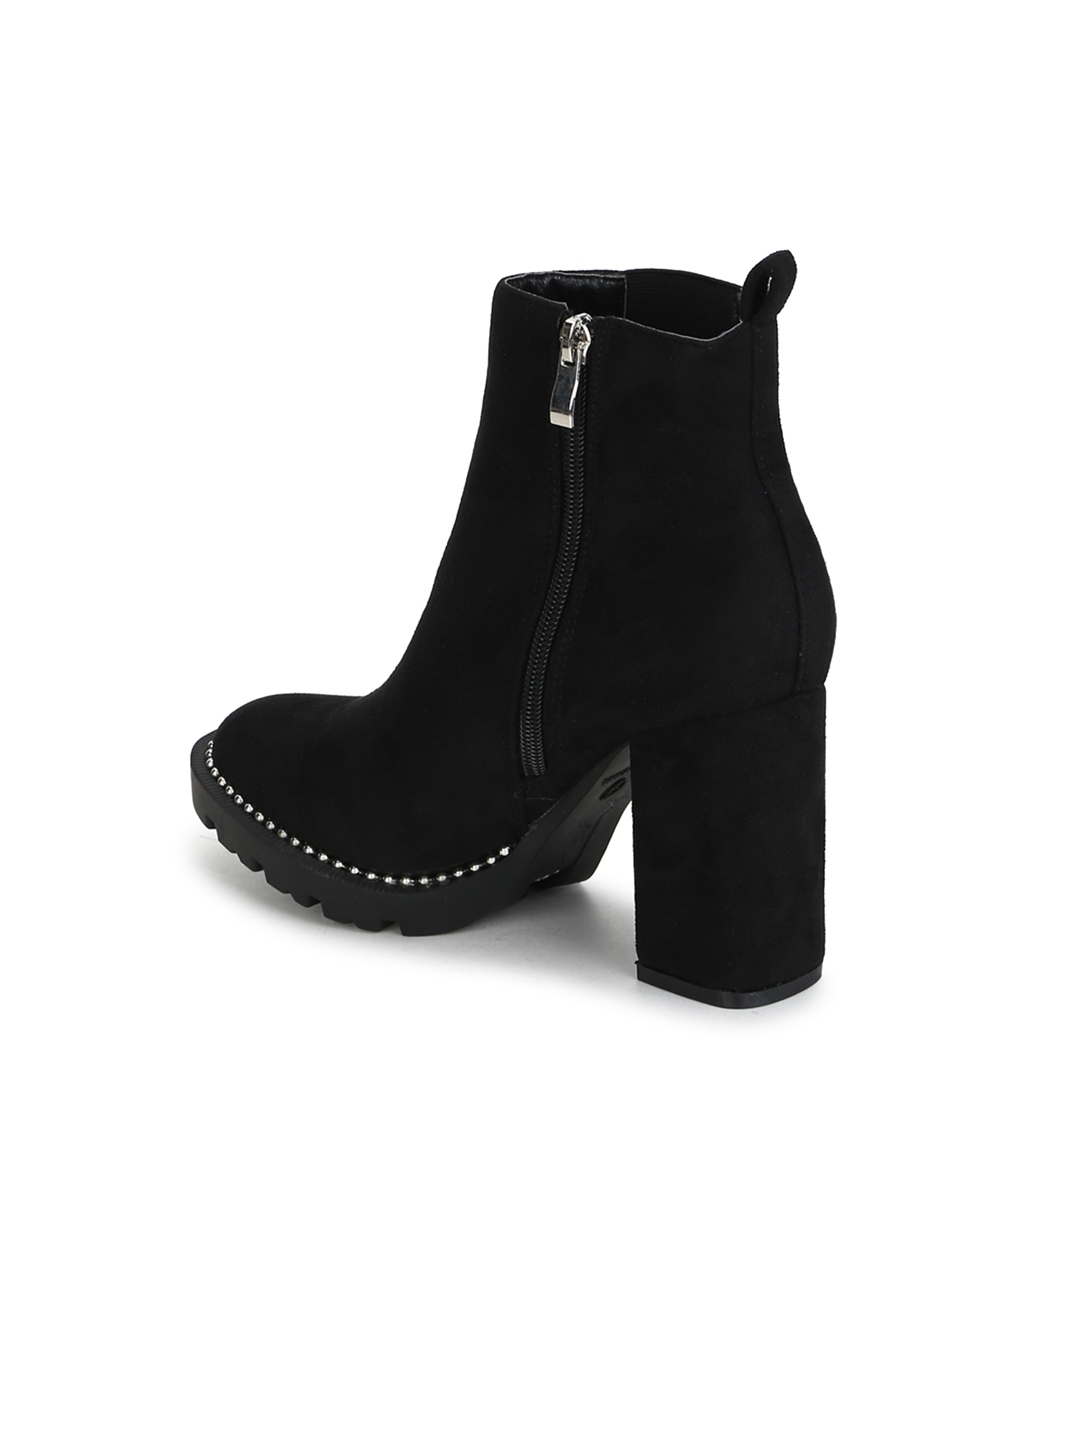 93a74d8d1a8 Buy Truffle Collection Women Black Solid Heeled Boots - Heels for ...